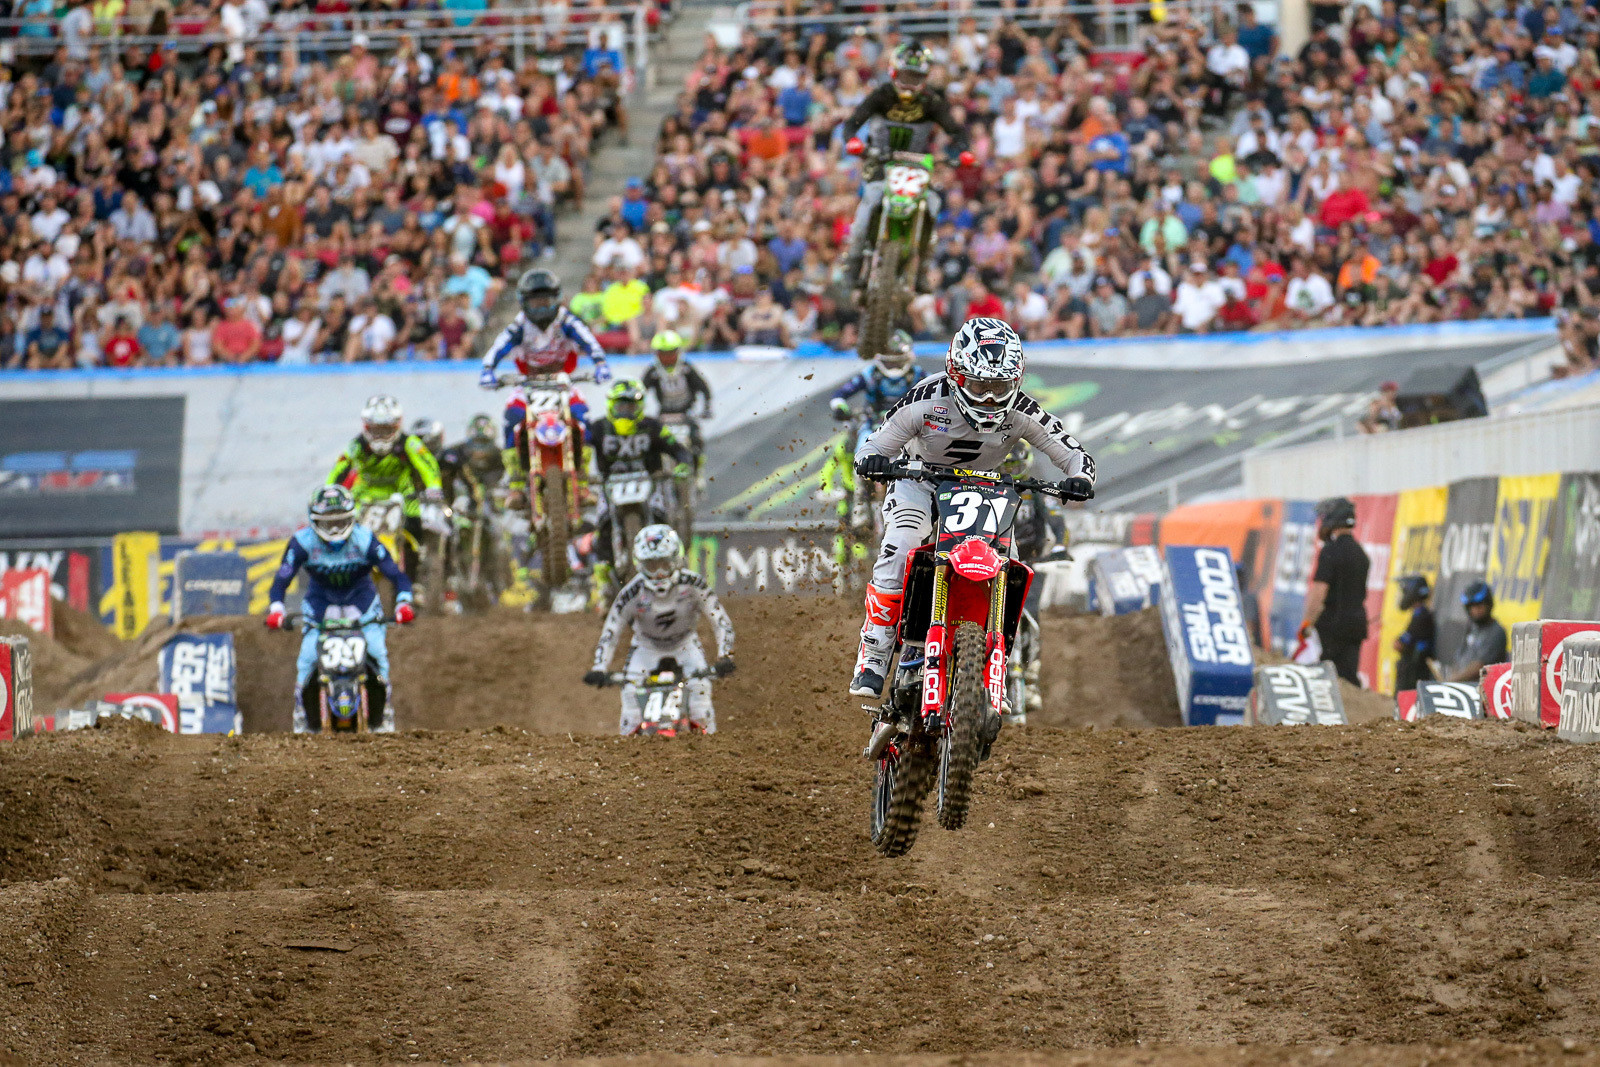 The GEICO Honda team swept heat wins on both coasts. RJ Hampshire took care of the West win.